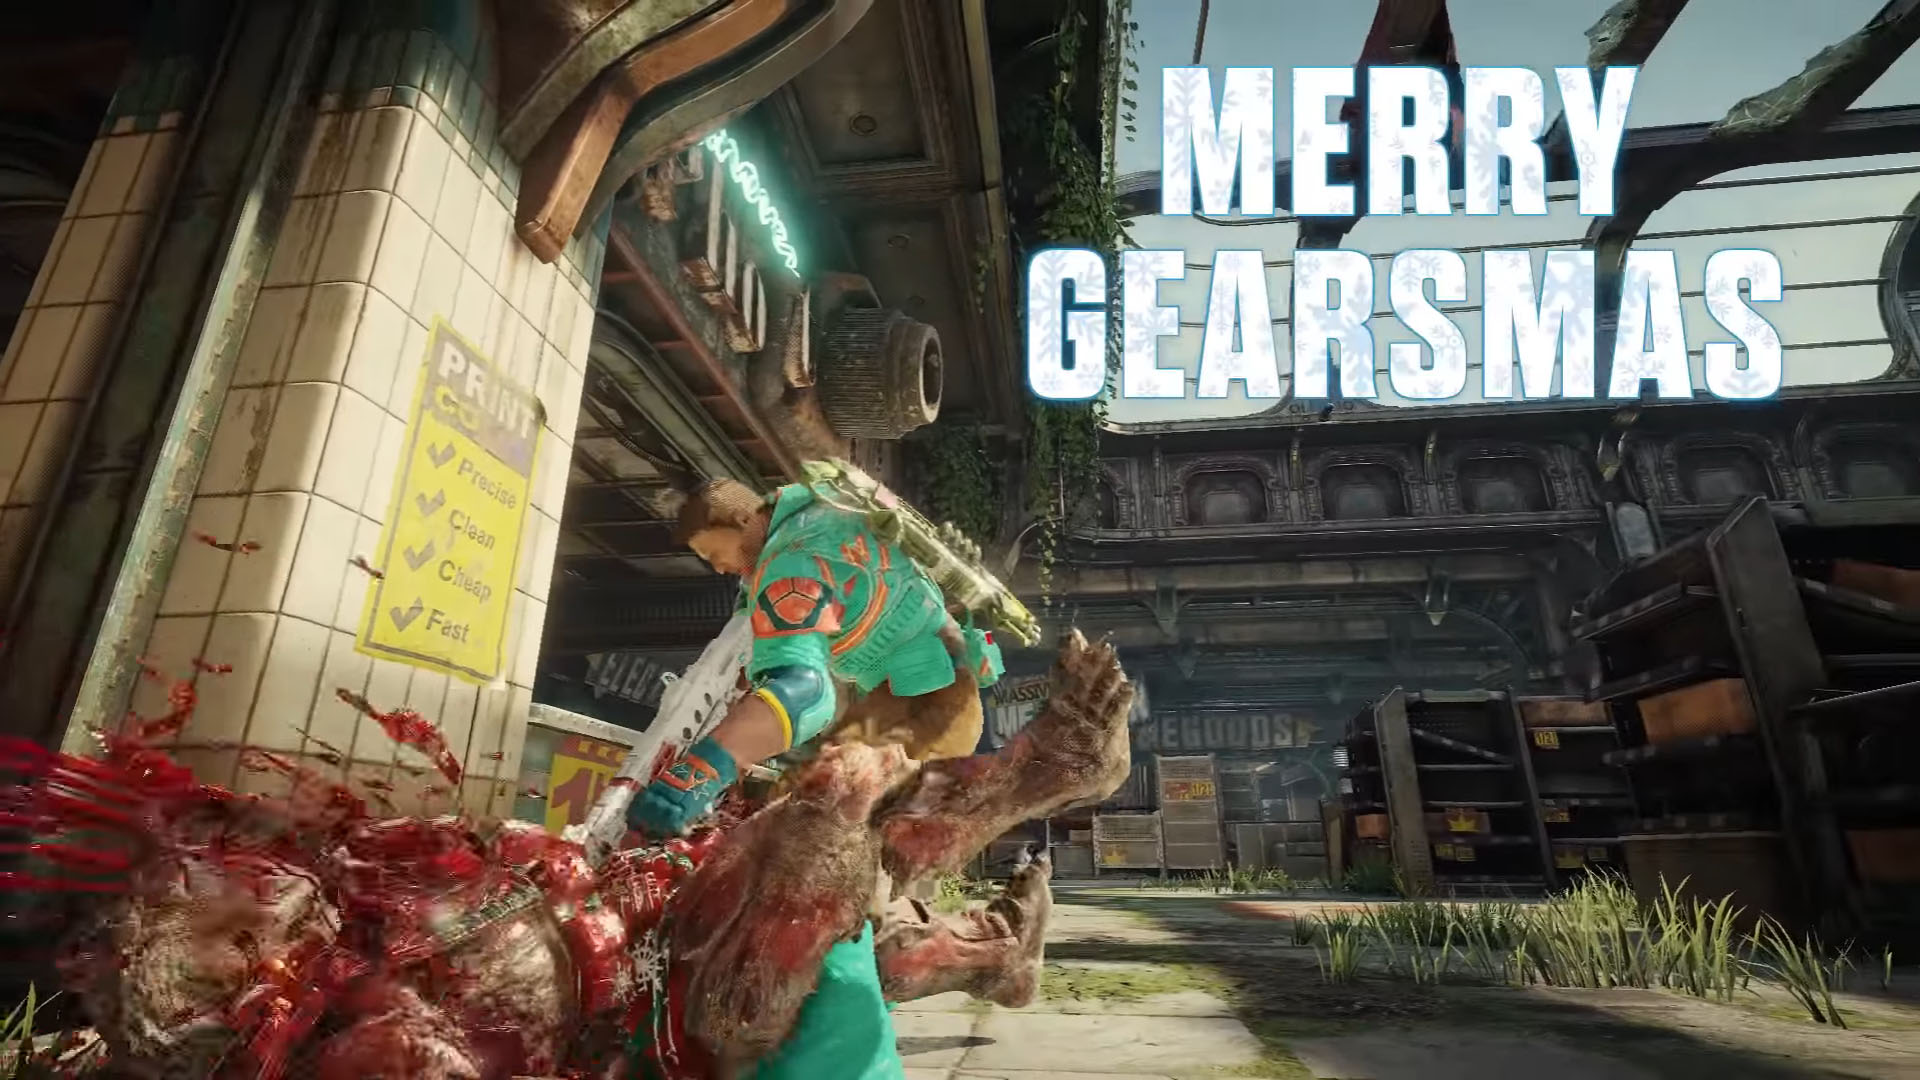 Gears of War 4 Gearsmas 2